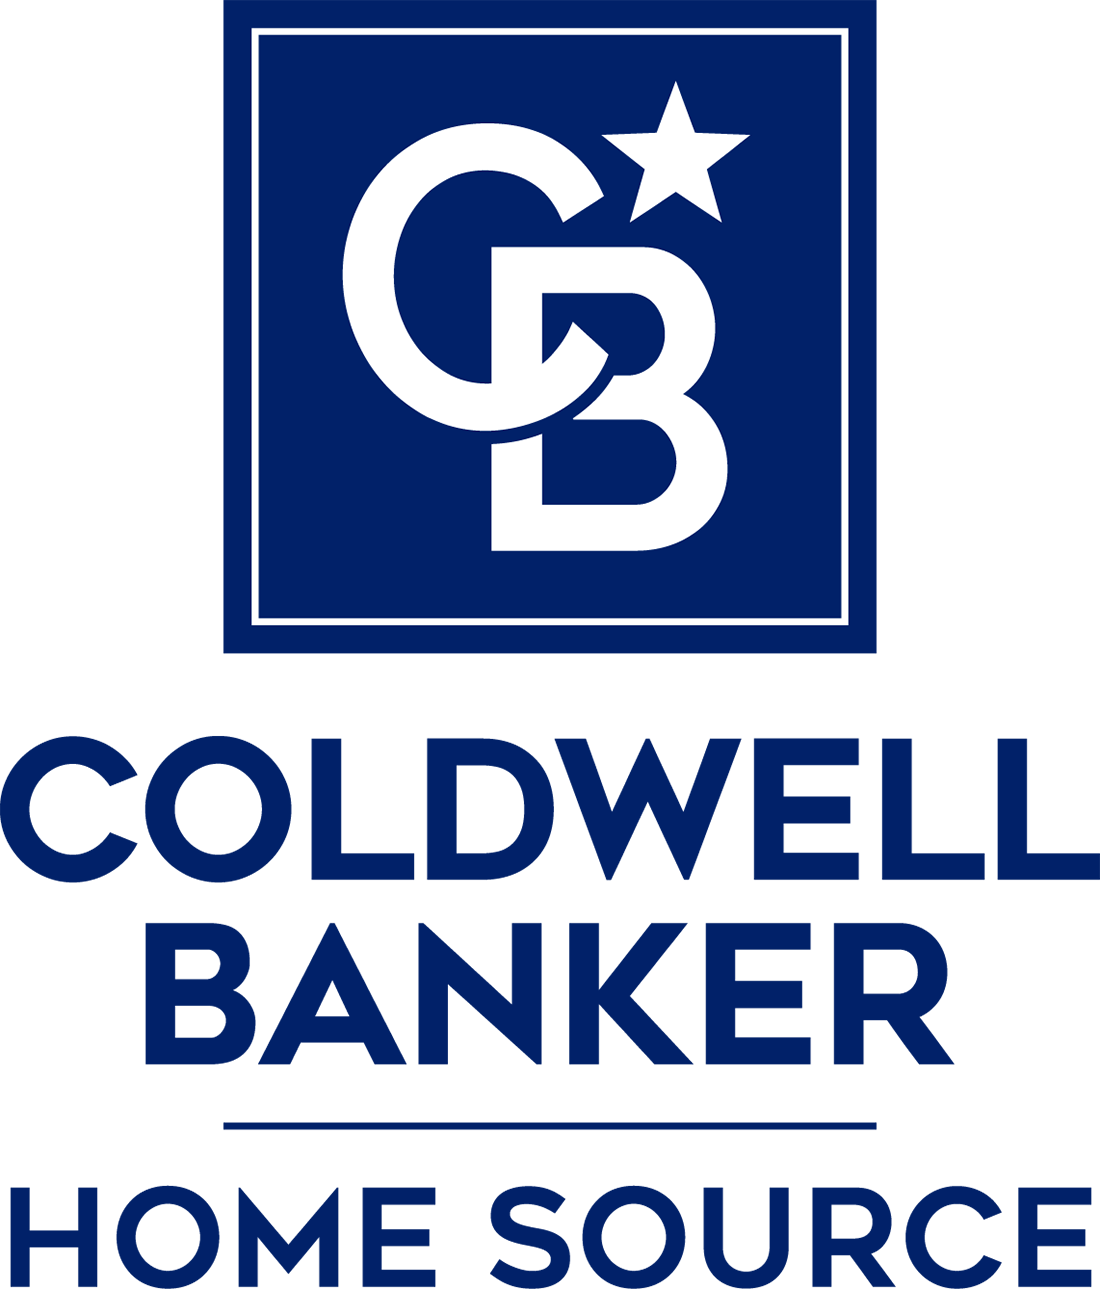 Tuesday Nickels - Coldwell Banker Home Source Logo